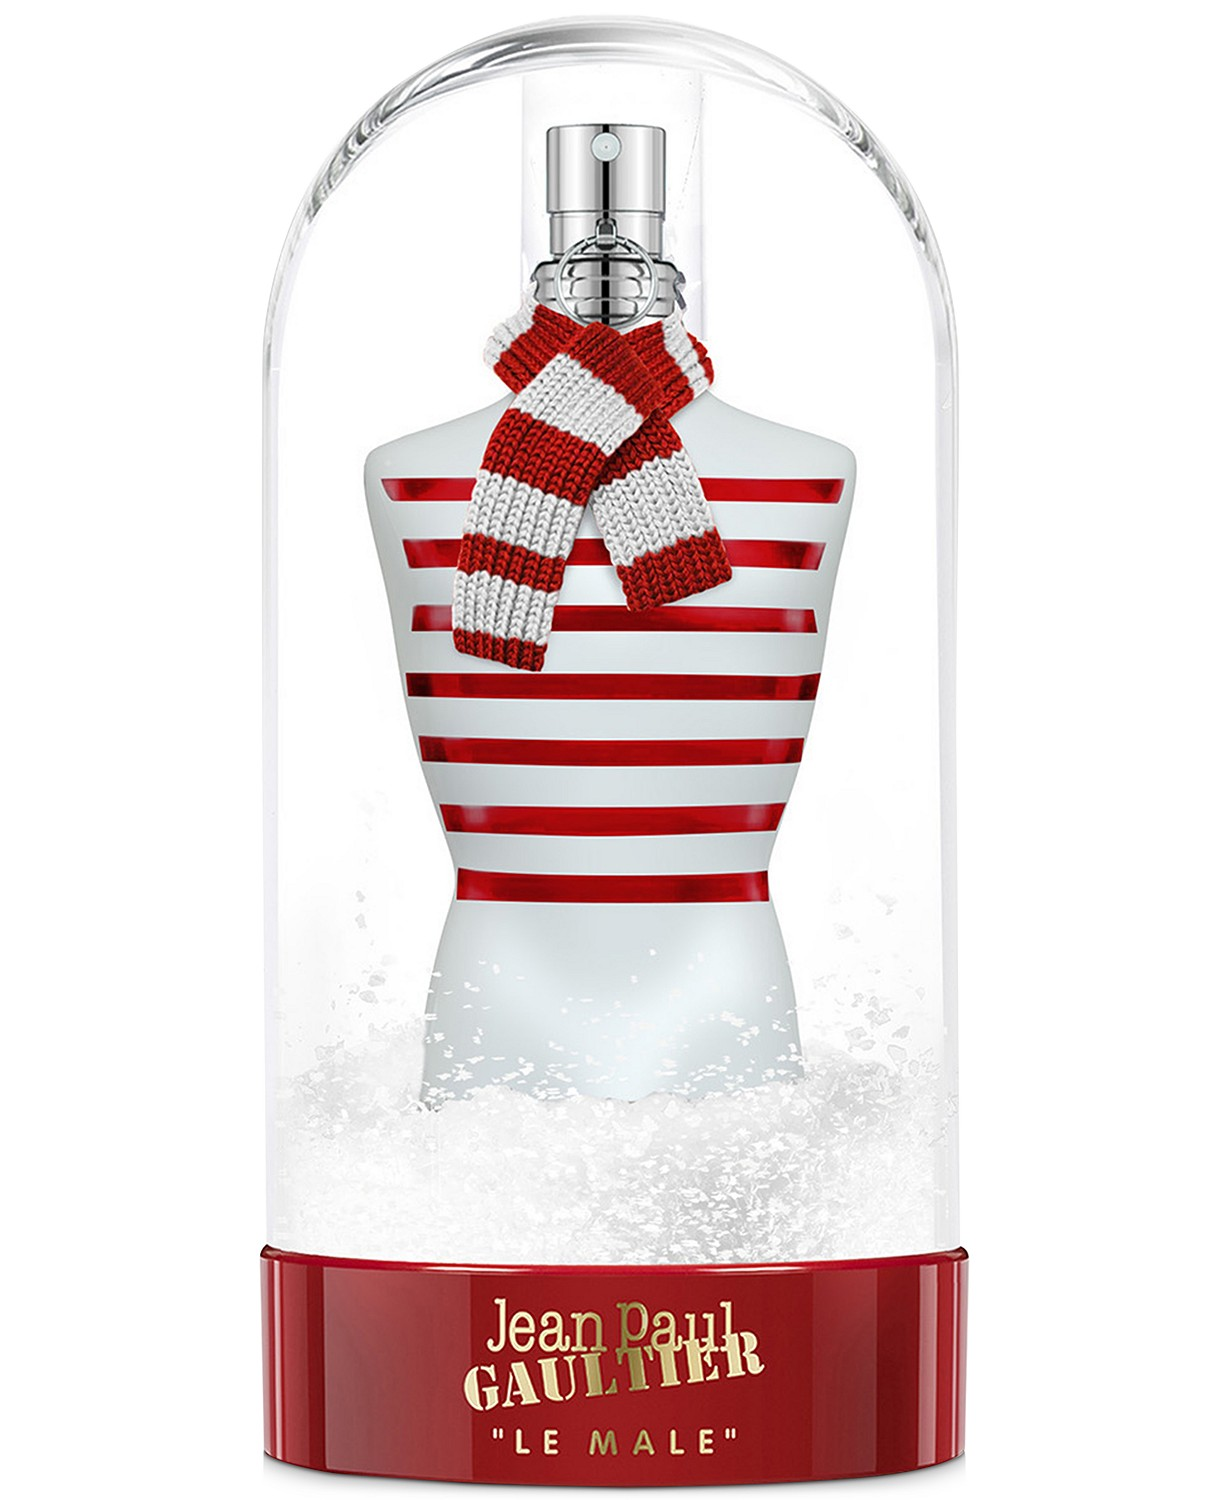 Image result for jean paul gaultier le male 2019